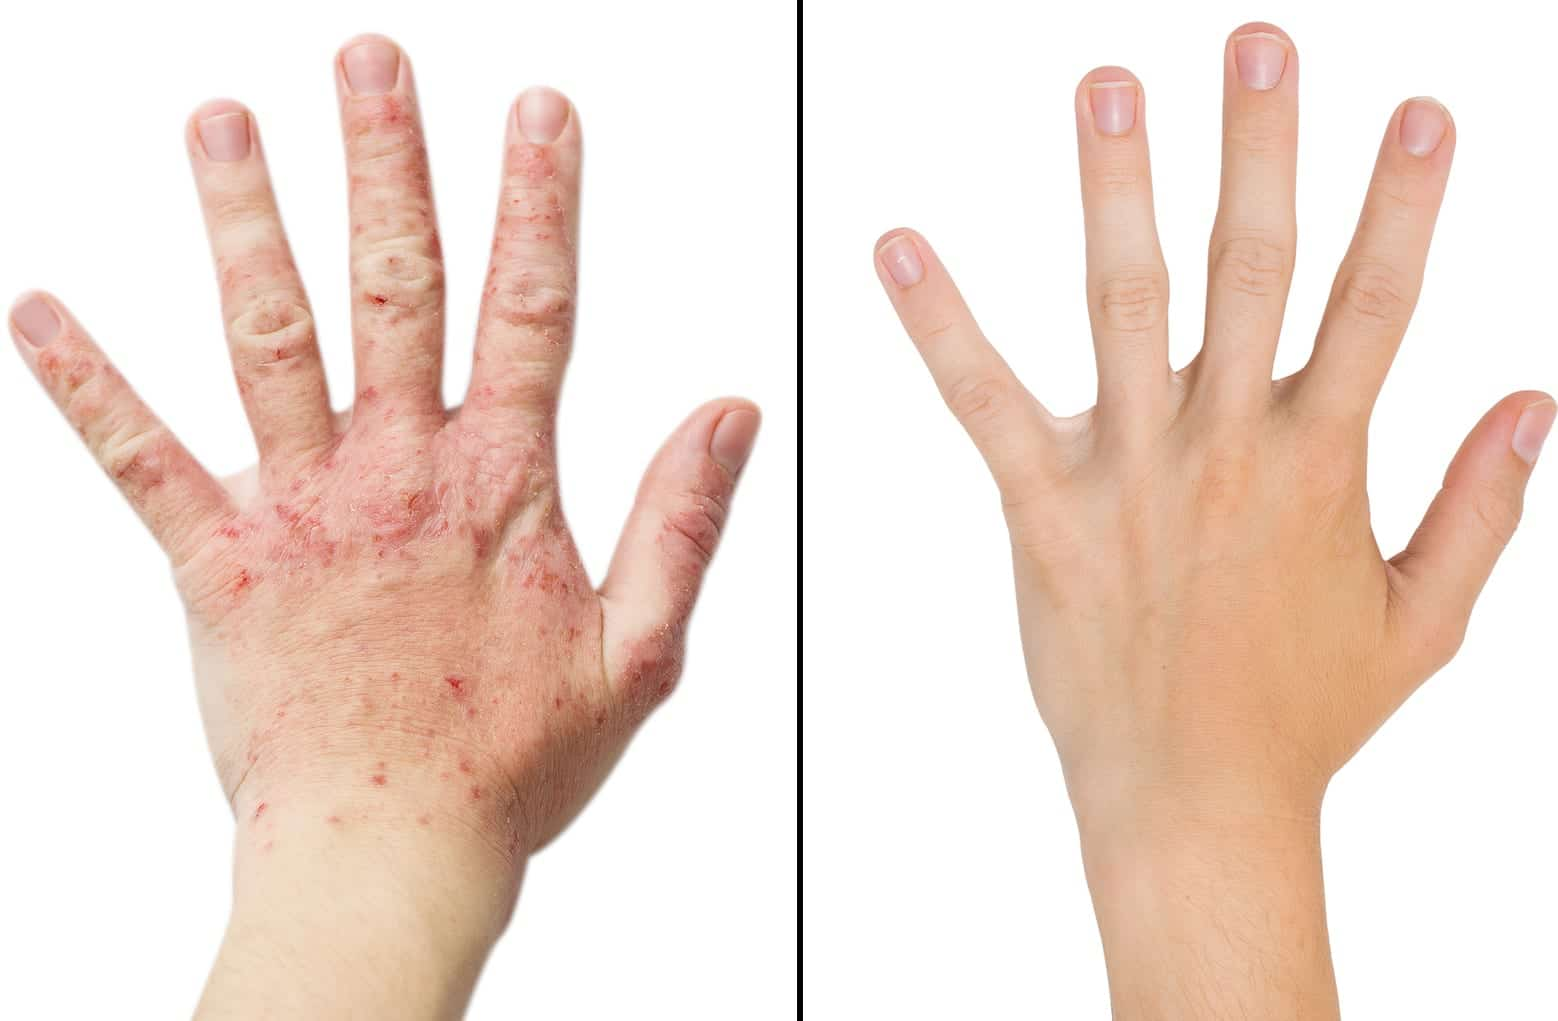 Eczema before and after treatment.